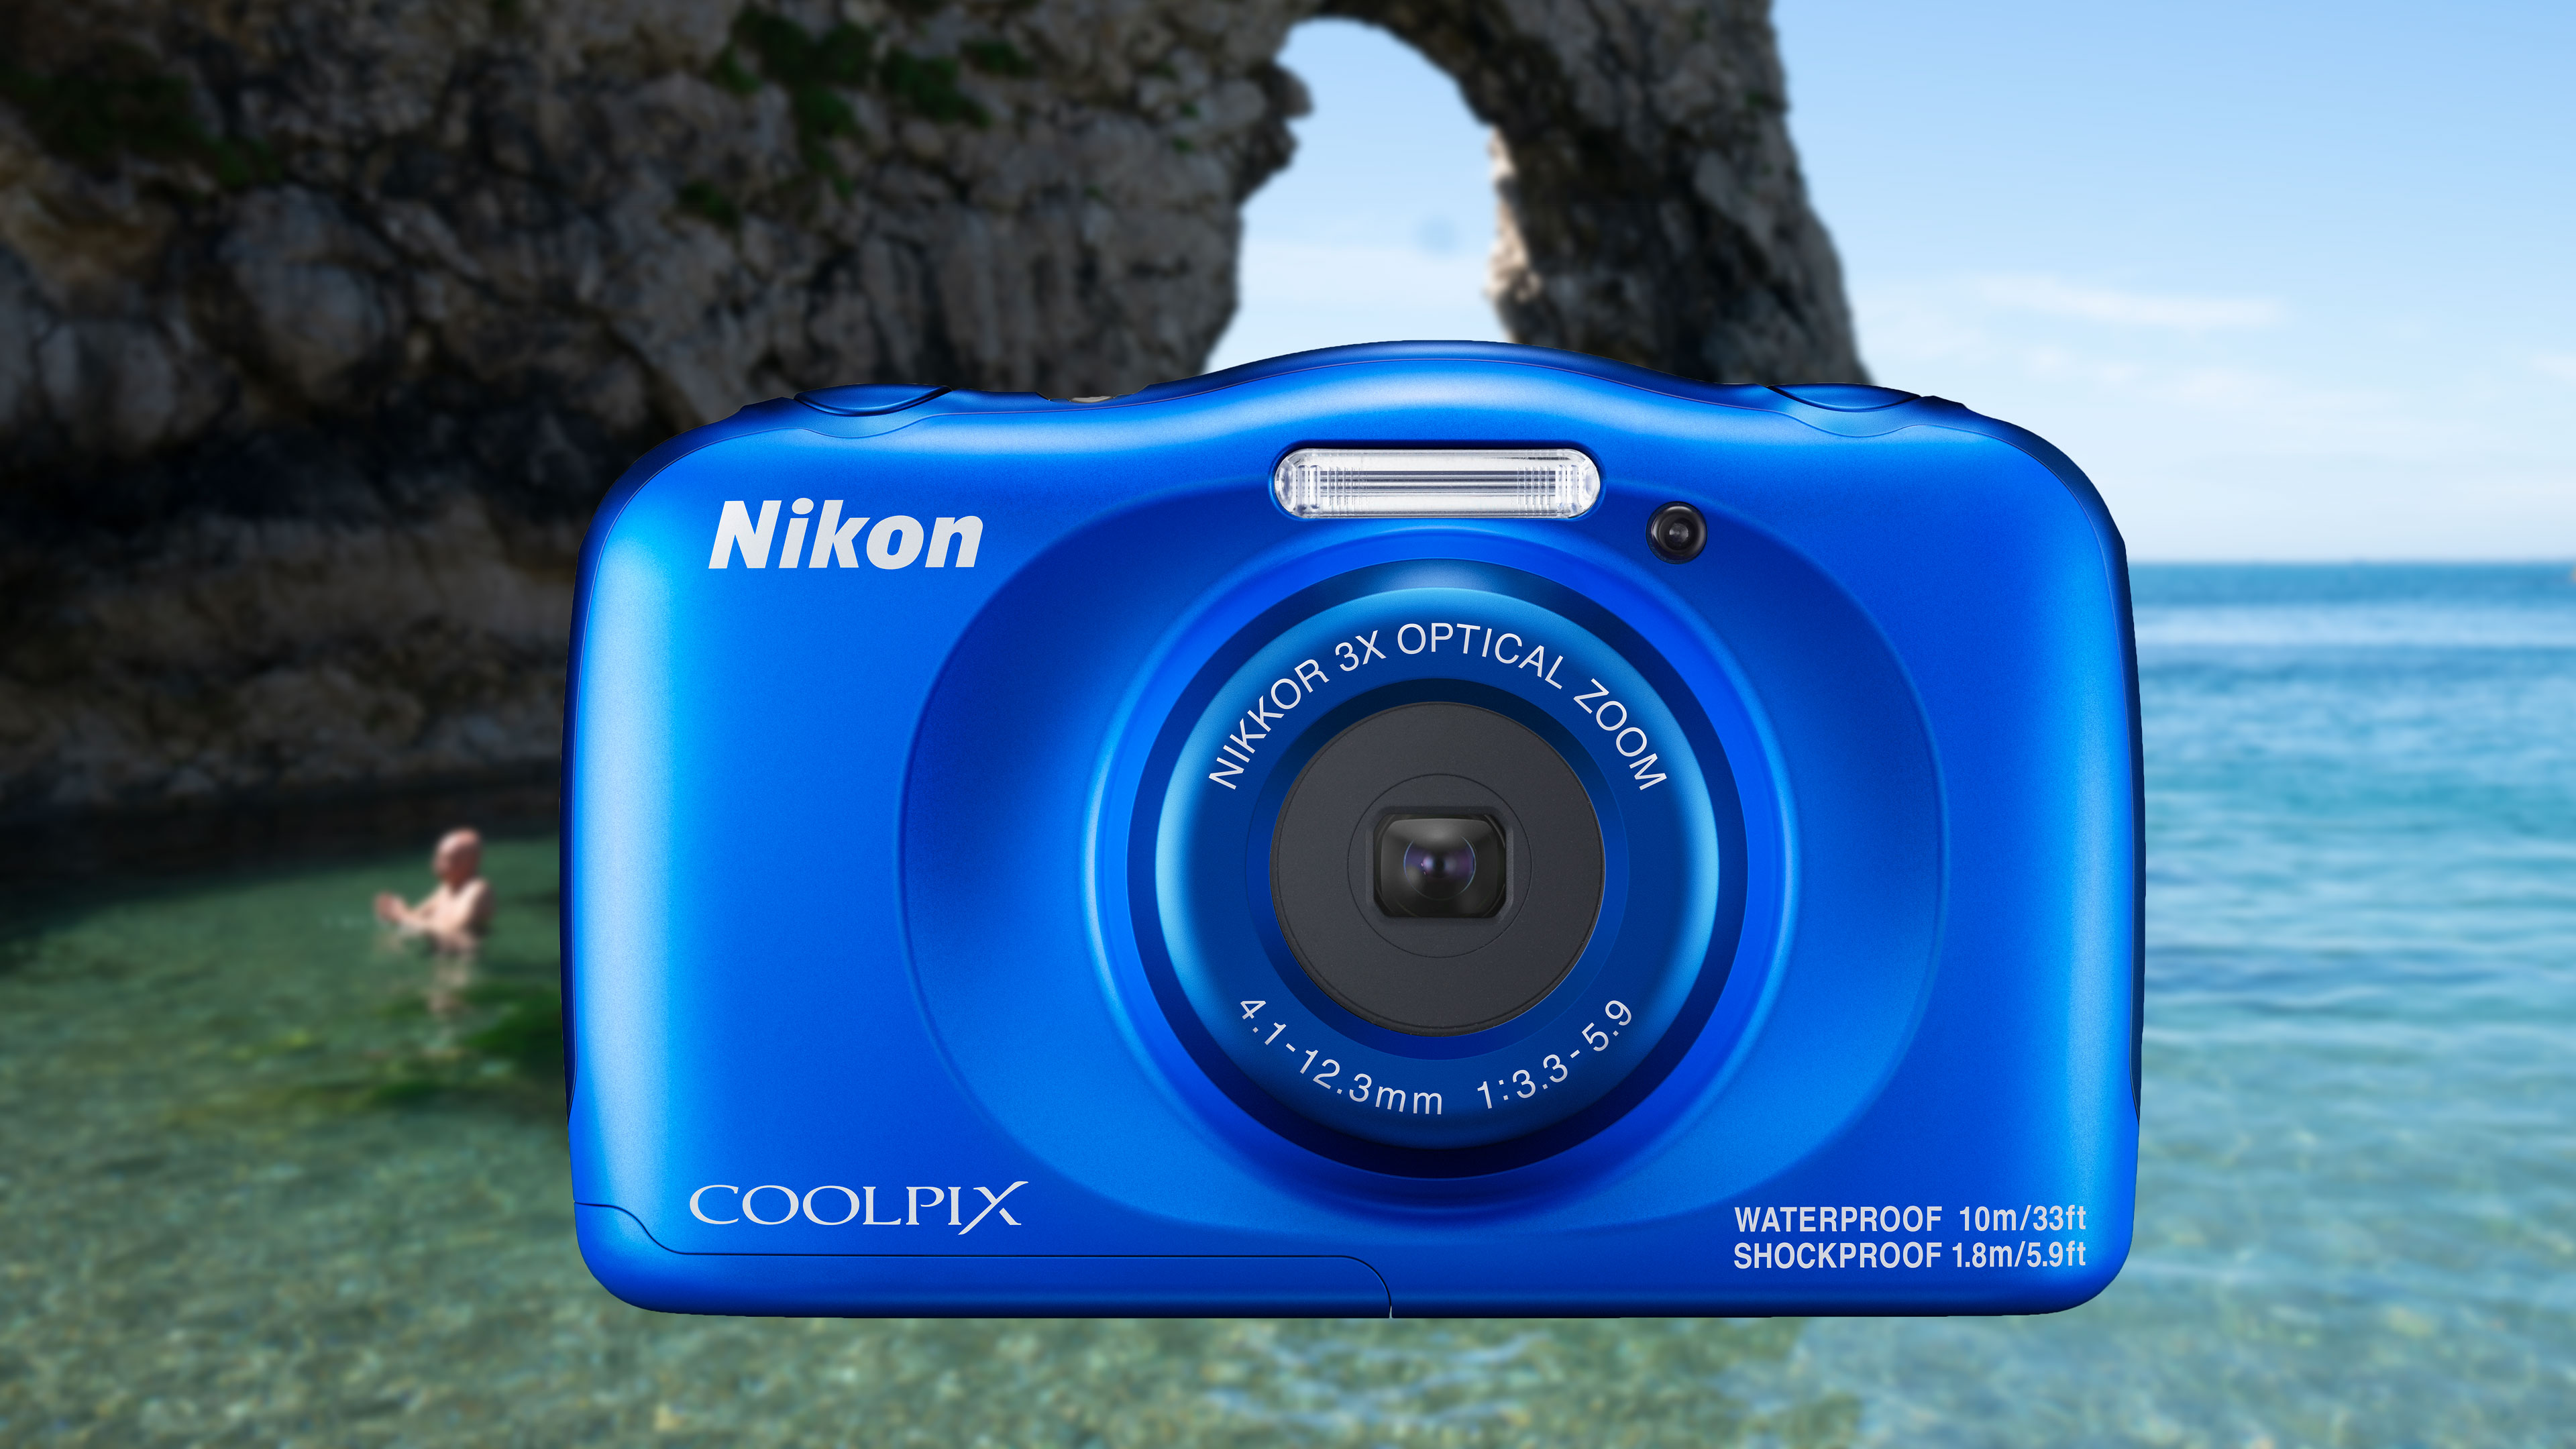 Nikon Coolpix W150 joins the pool party